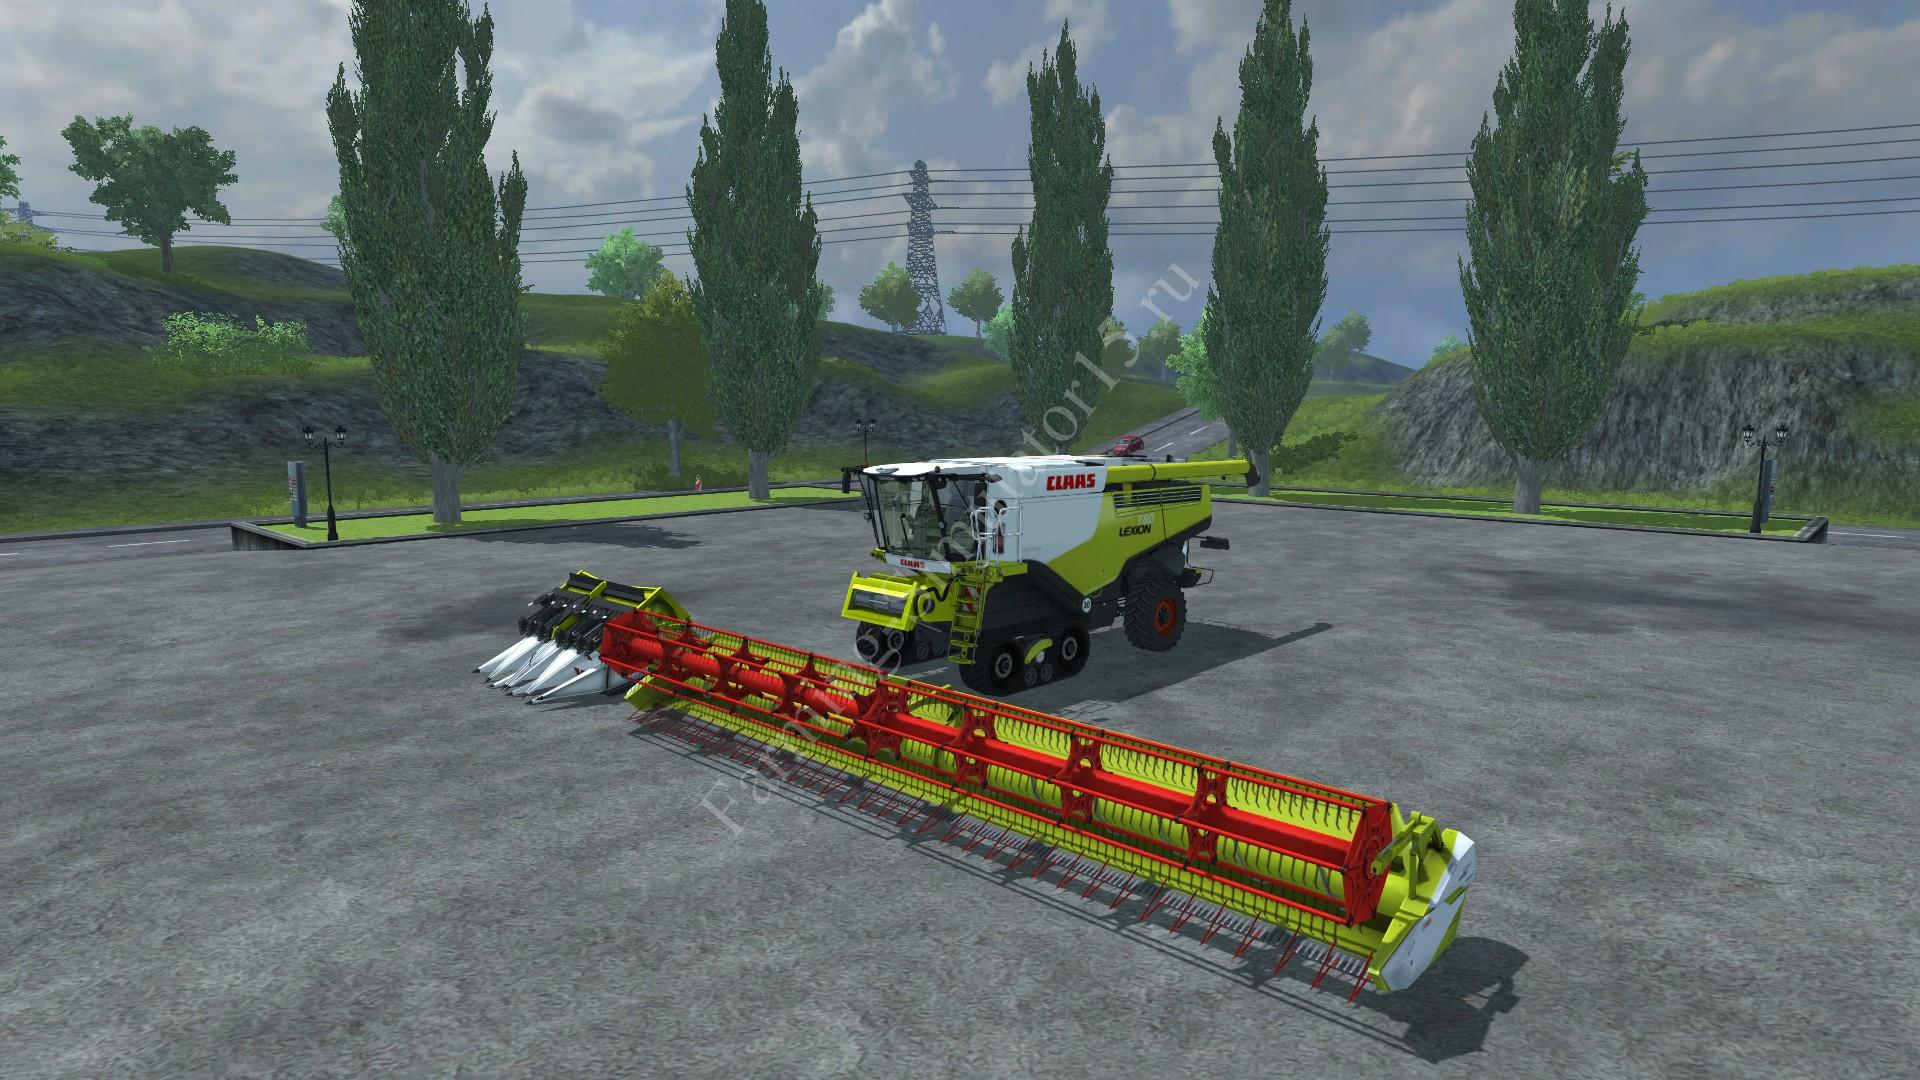 Мод комбайна Claas Lexion 780 v 0.1 Farming Simulator 2013, Farming Simulator 13